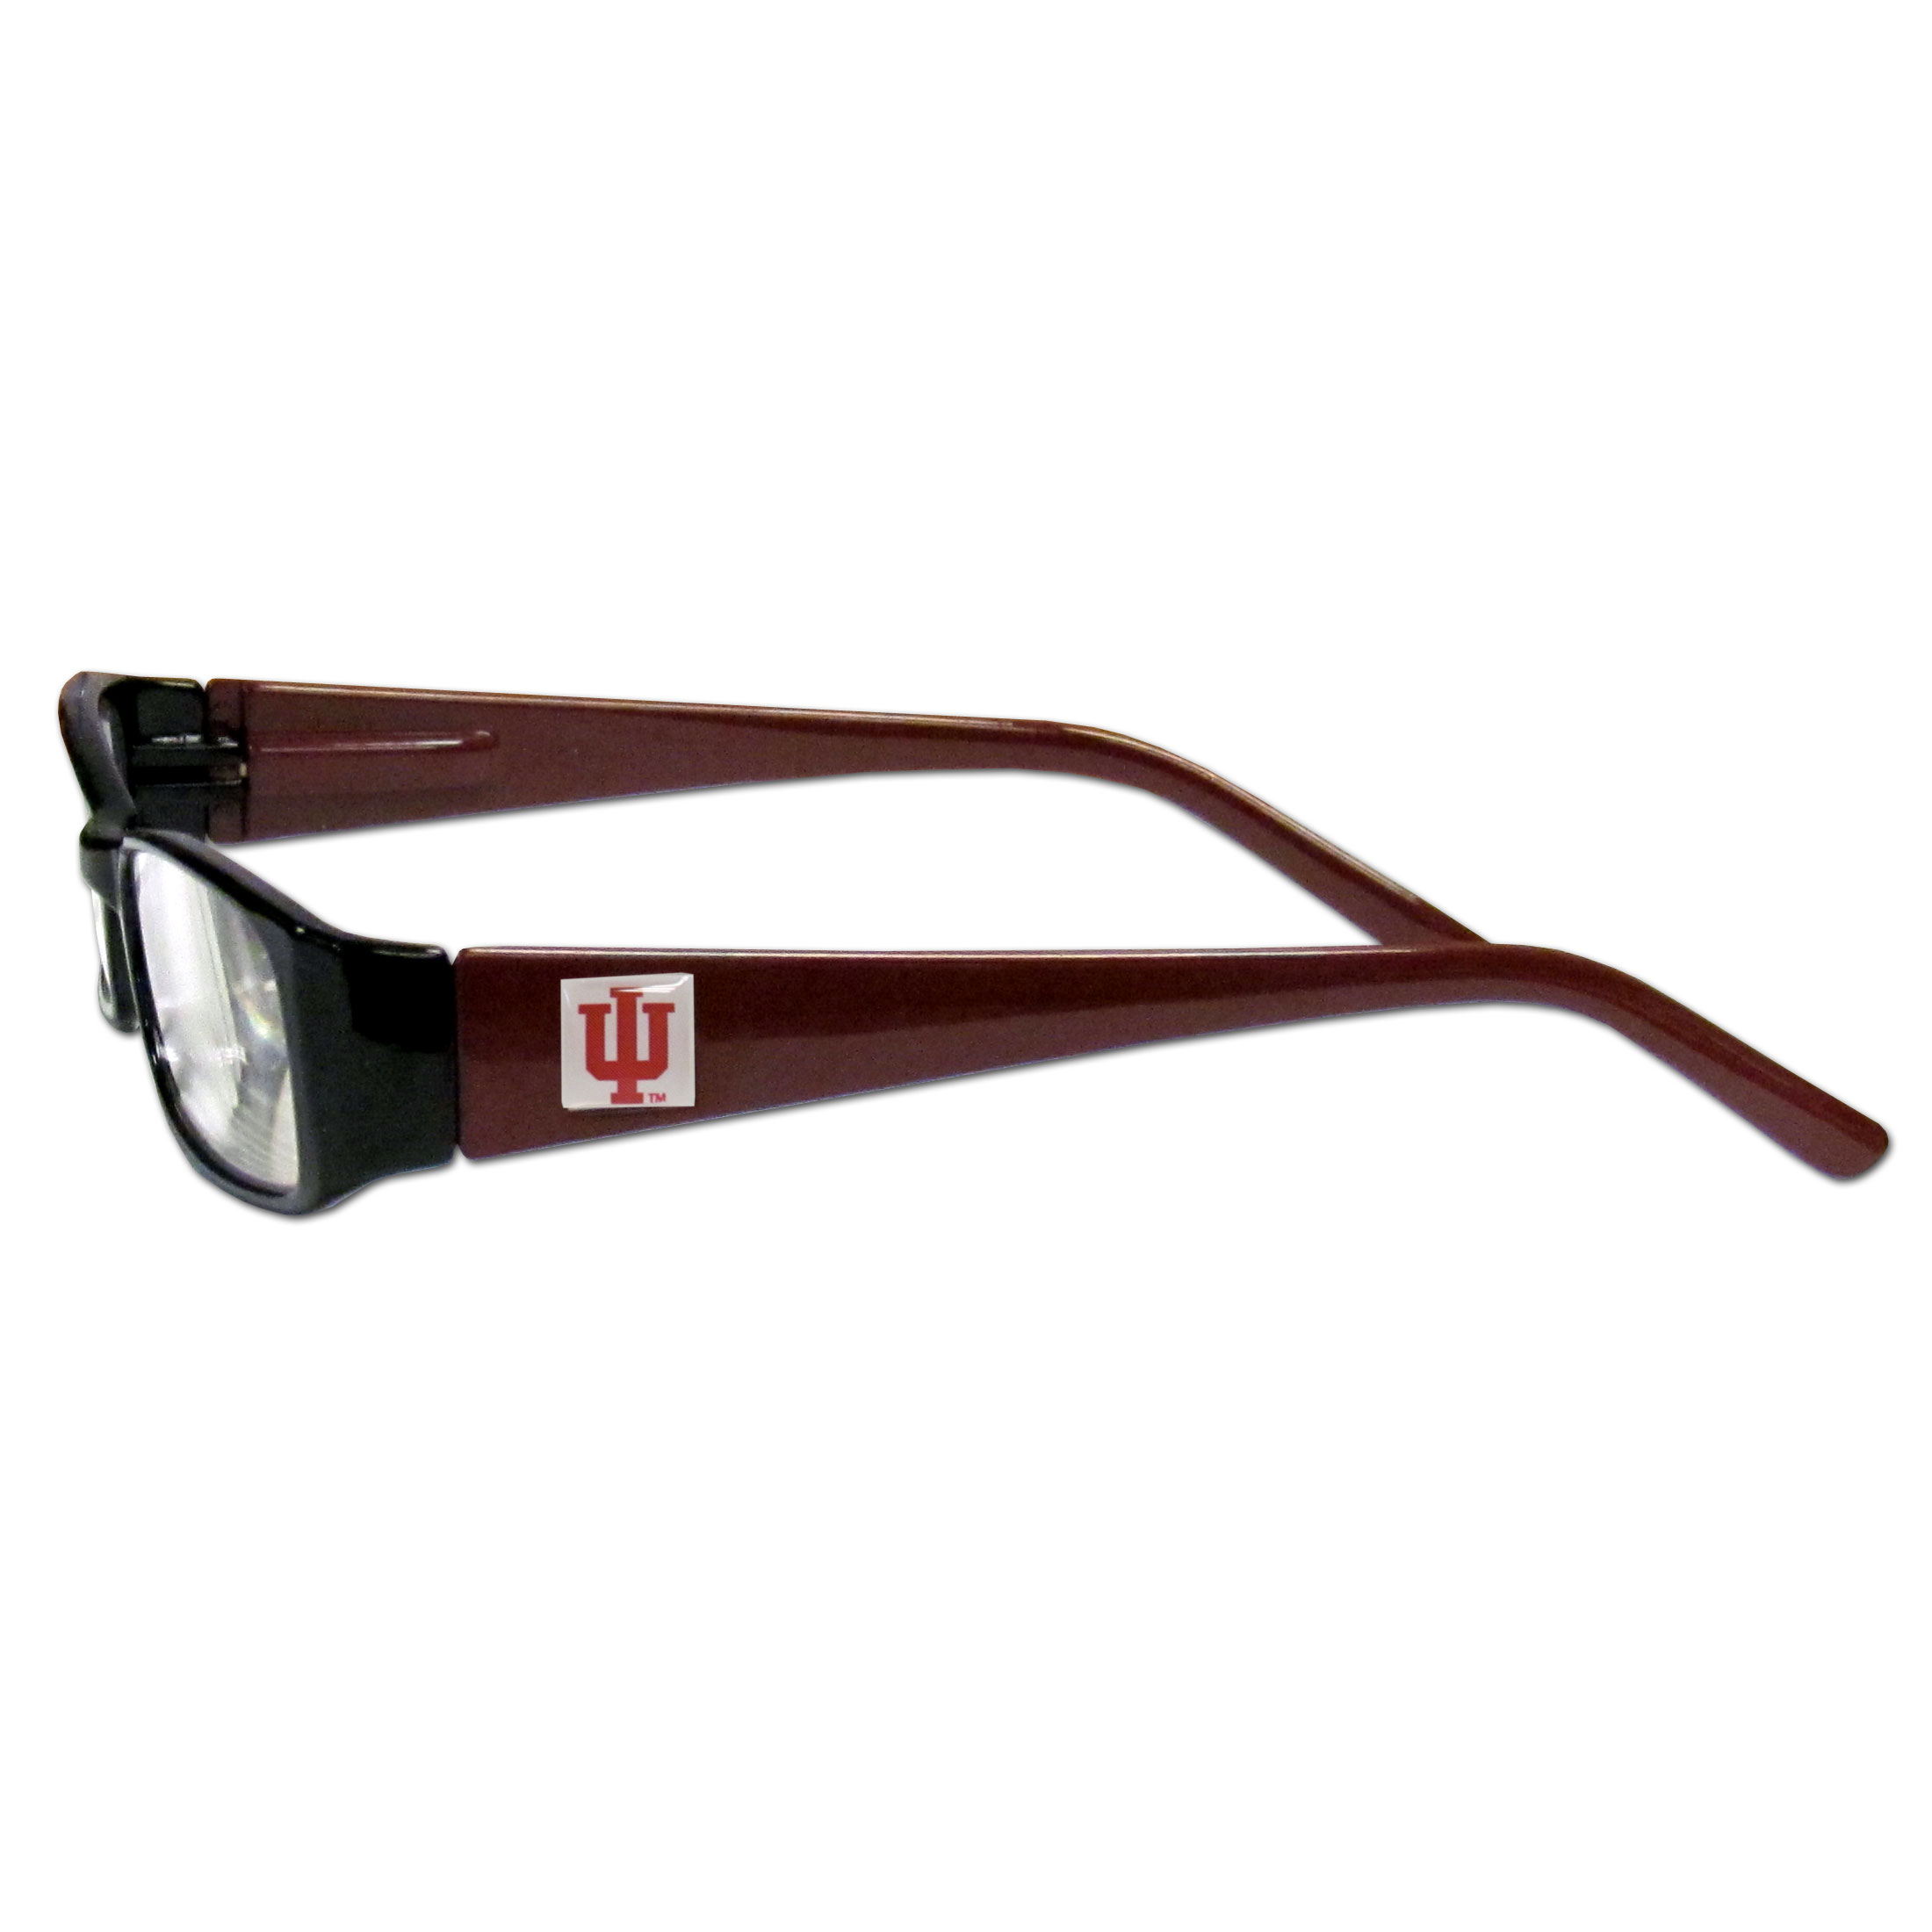 Indiana Hoosiers Reading Glasses +2.25 - Our Indiana Hoosiers reading glasses are 5.25 inches wide and feature the team logo on each arm. Magnification Power 2.25